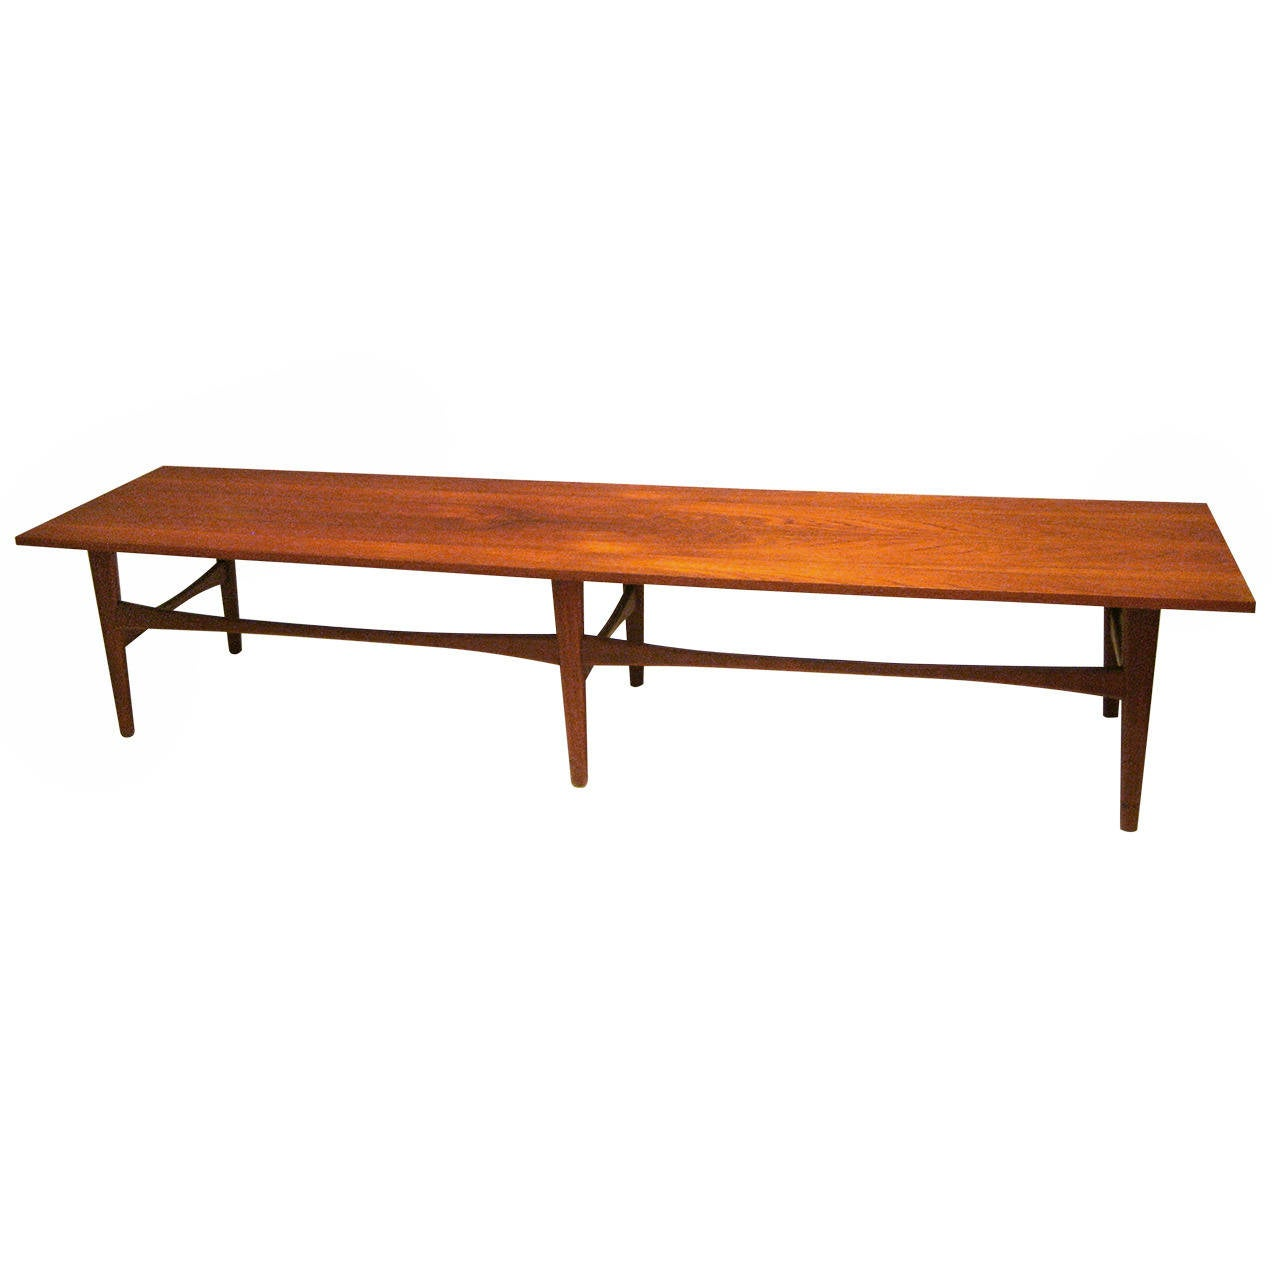 Danish modern long coffee table or bench in teak at 1stdibs for Narrow cocktail table